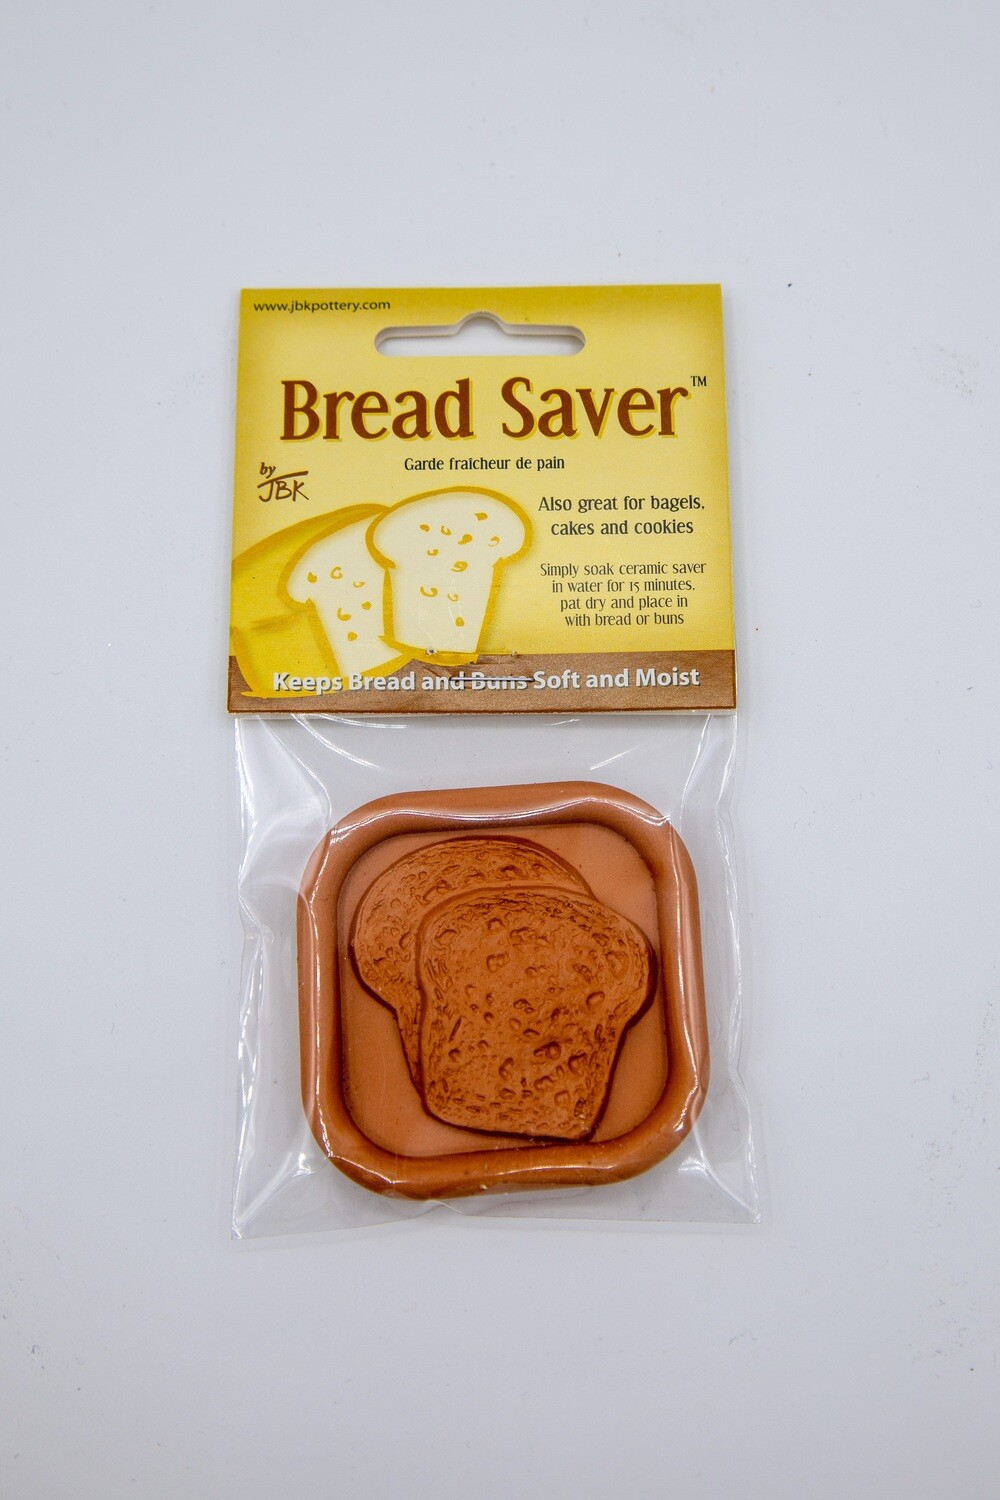 Bread Saver